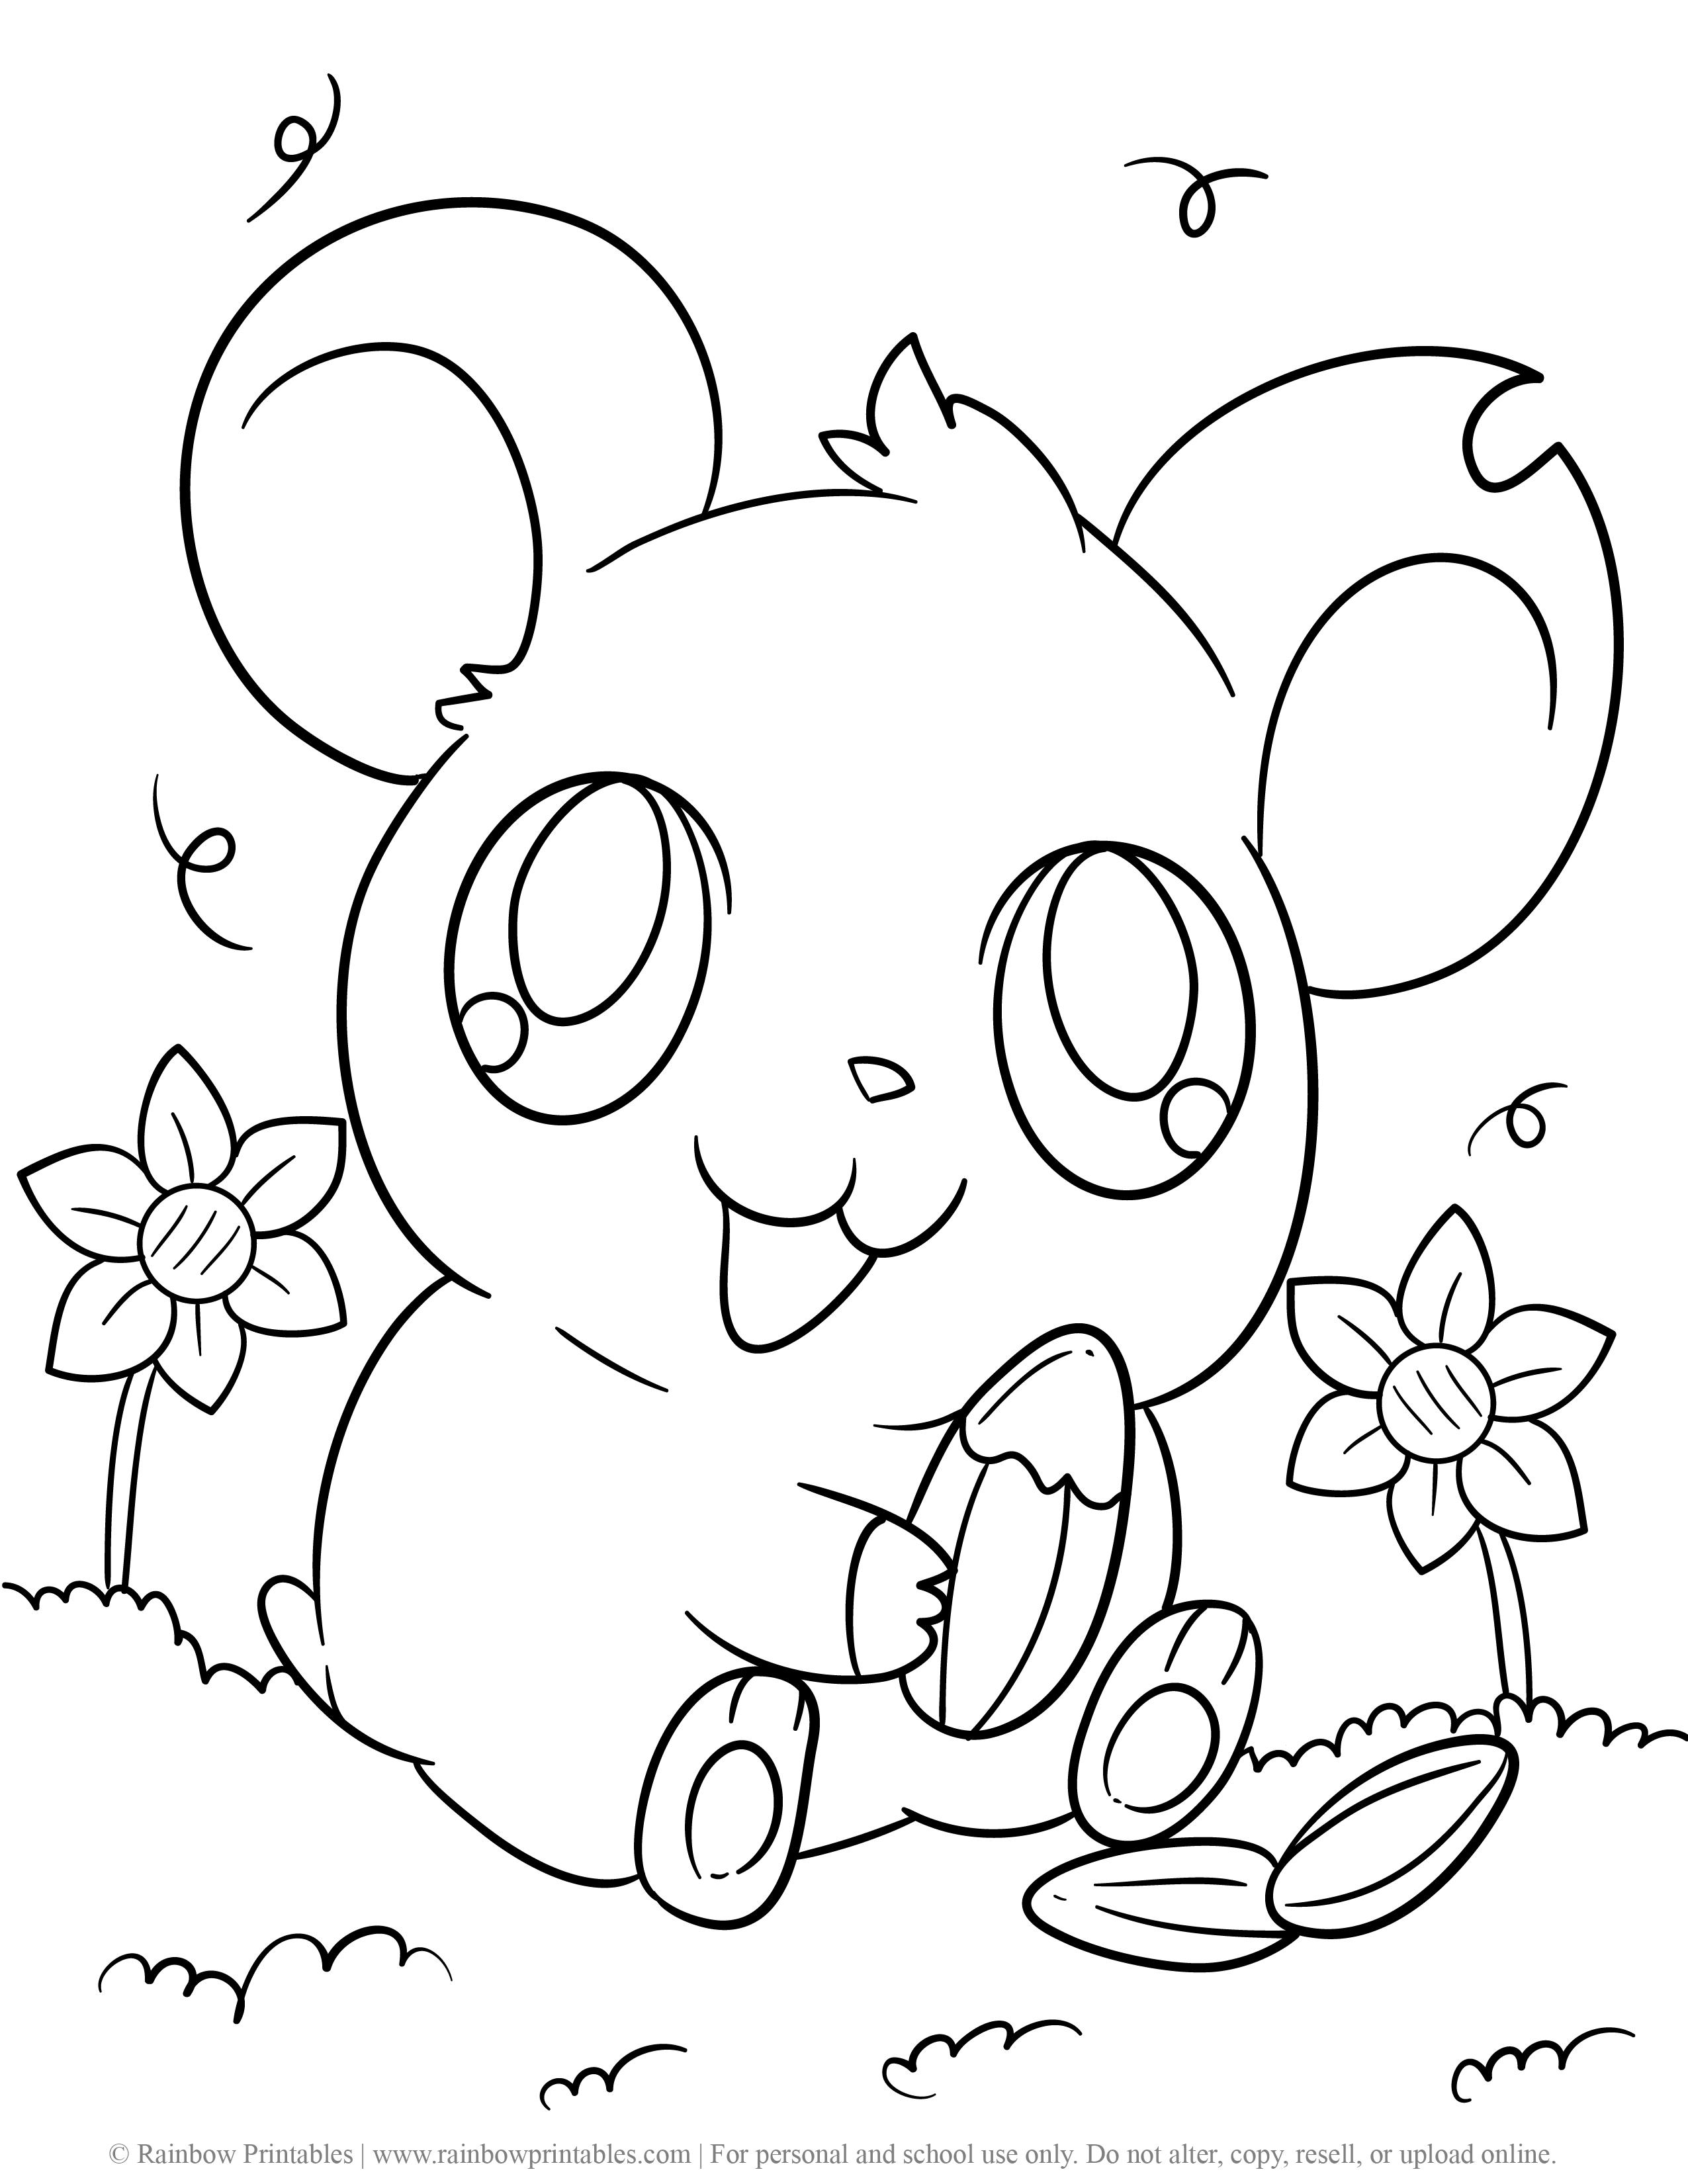 Cute Hamtaro Hamster Rodent Guinea Pig Eating Sunflower Seed JAPANENSE Coloring Page for Kids